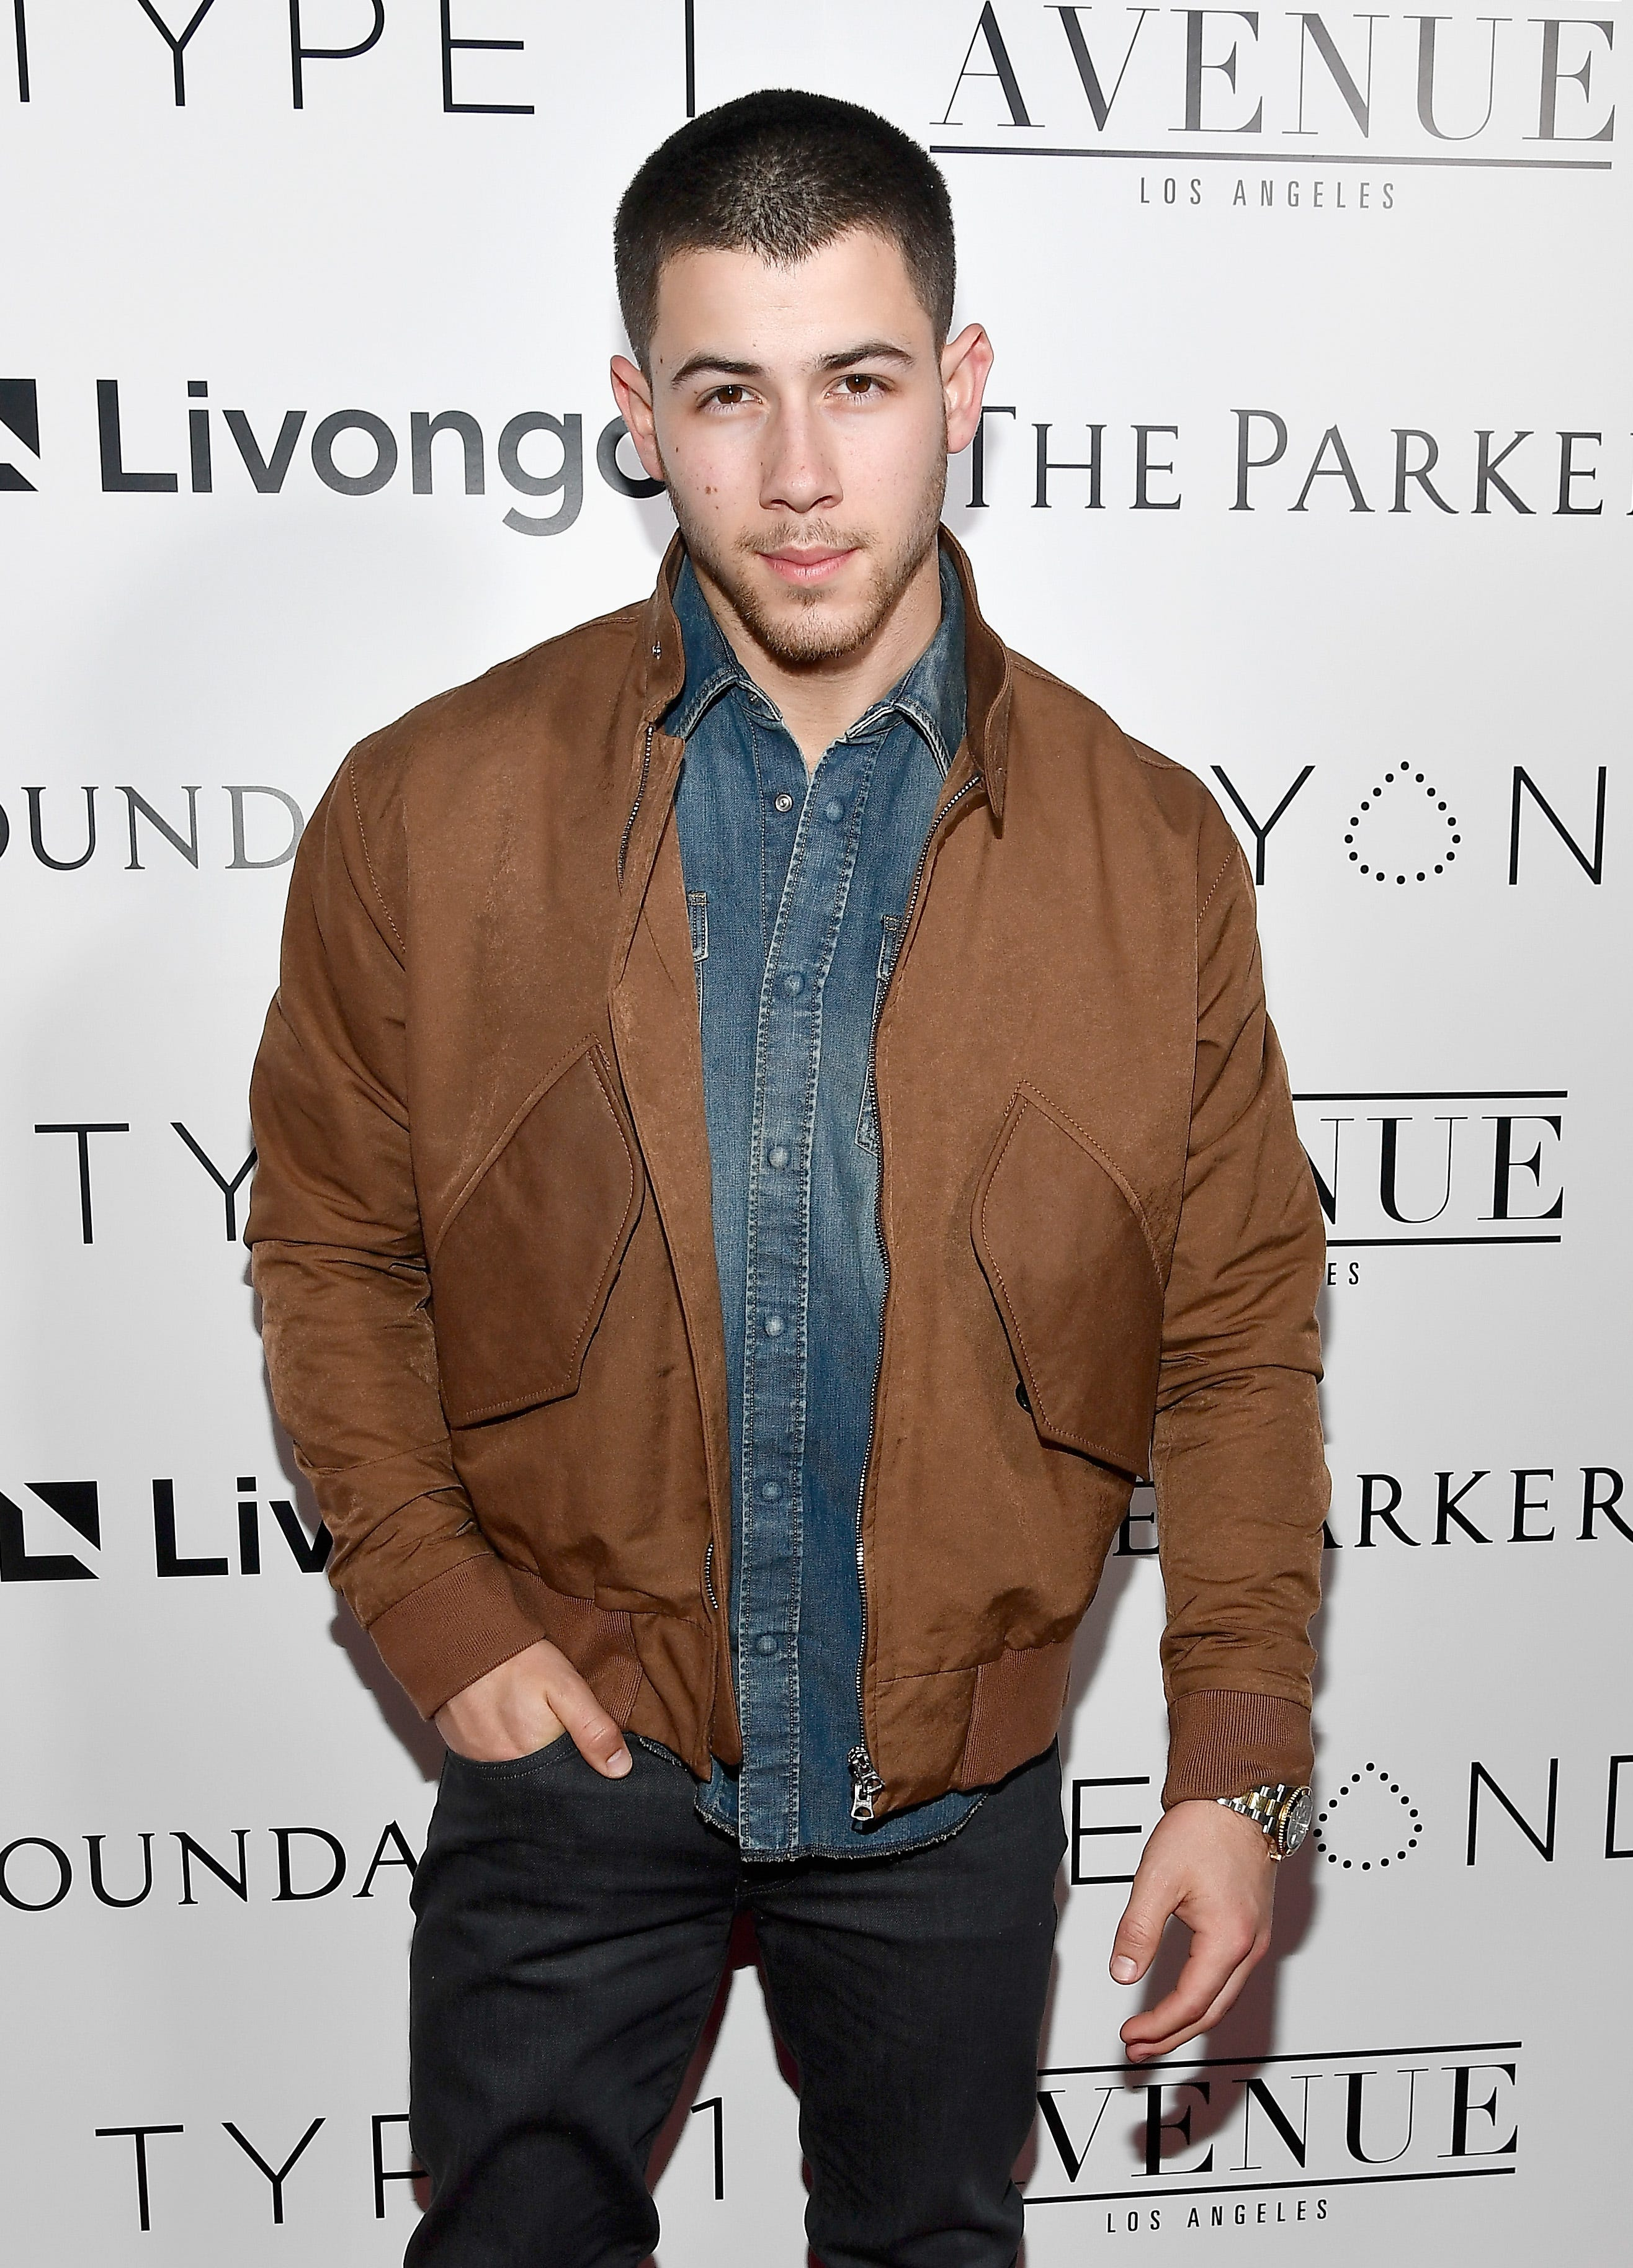 SNL : Nick Jonas says pulling double duty as guest host and musical guest is  a dream come true